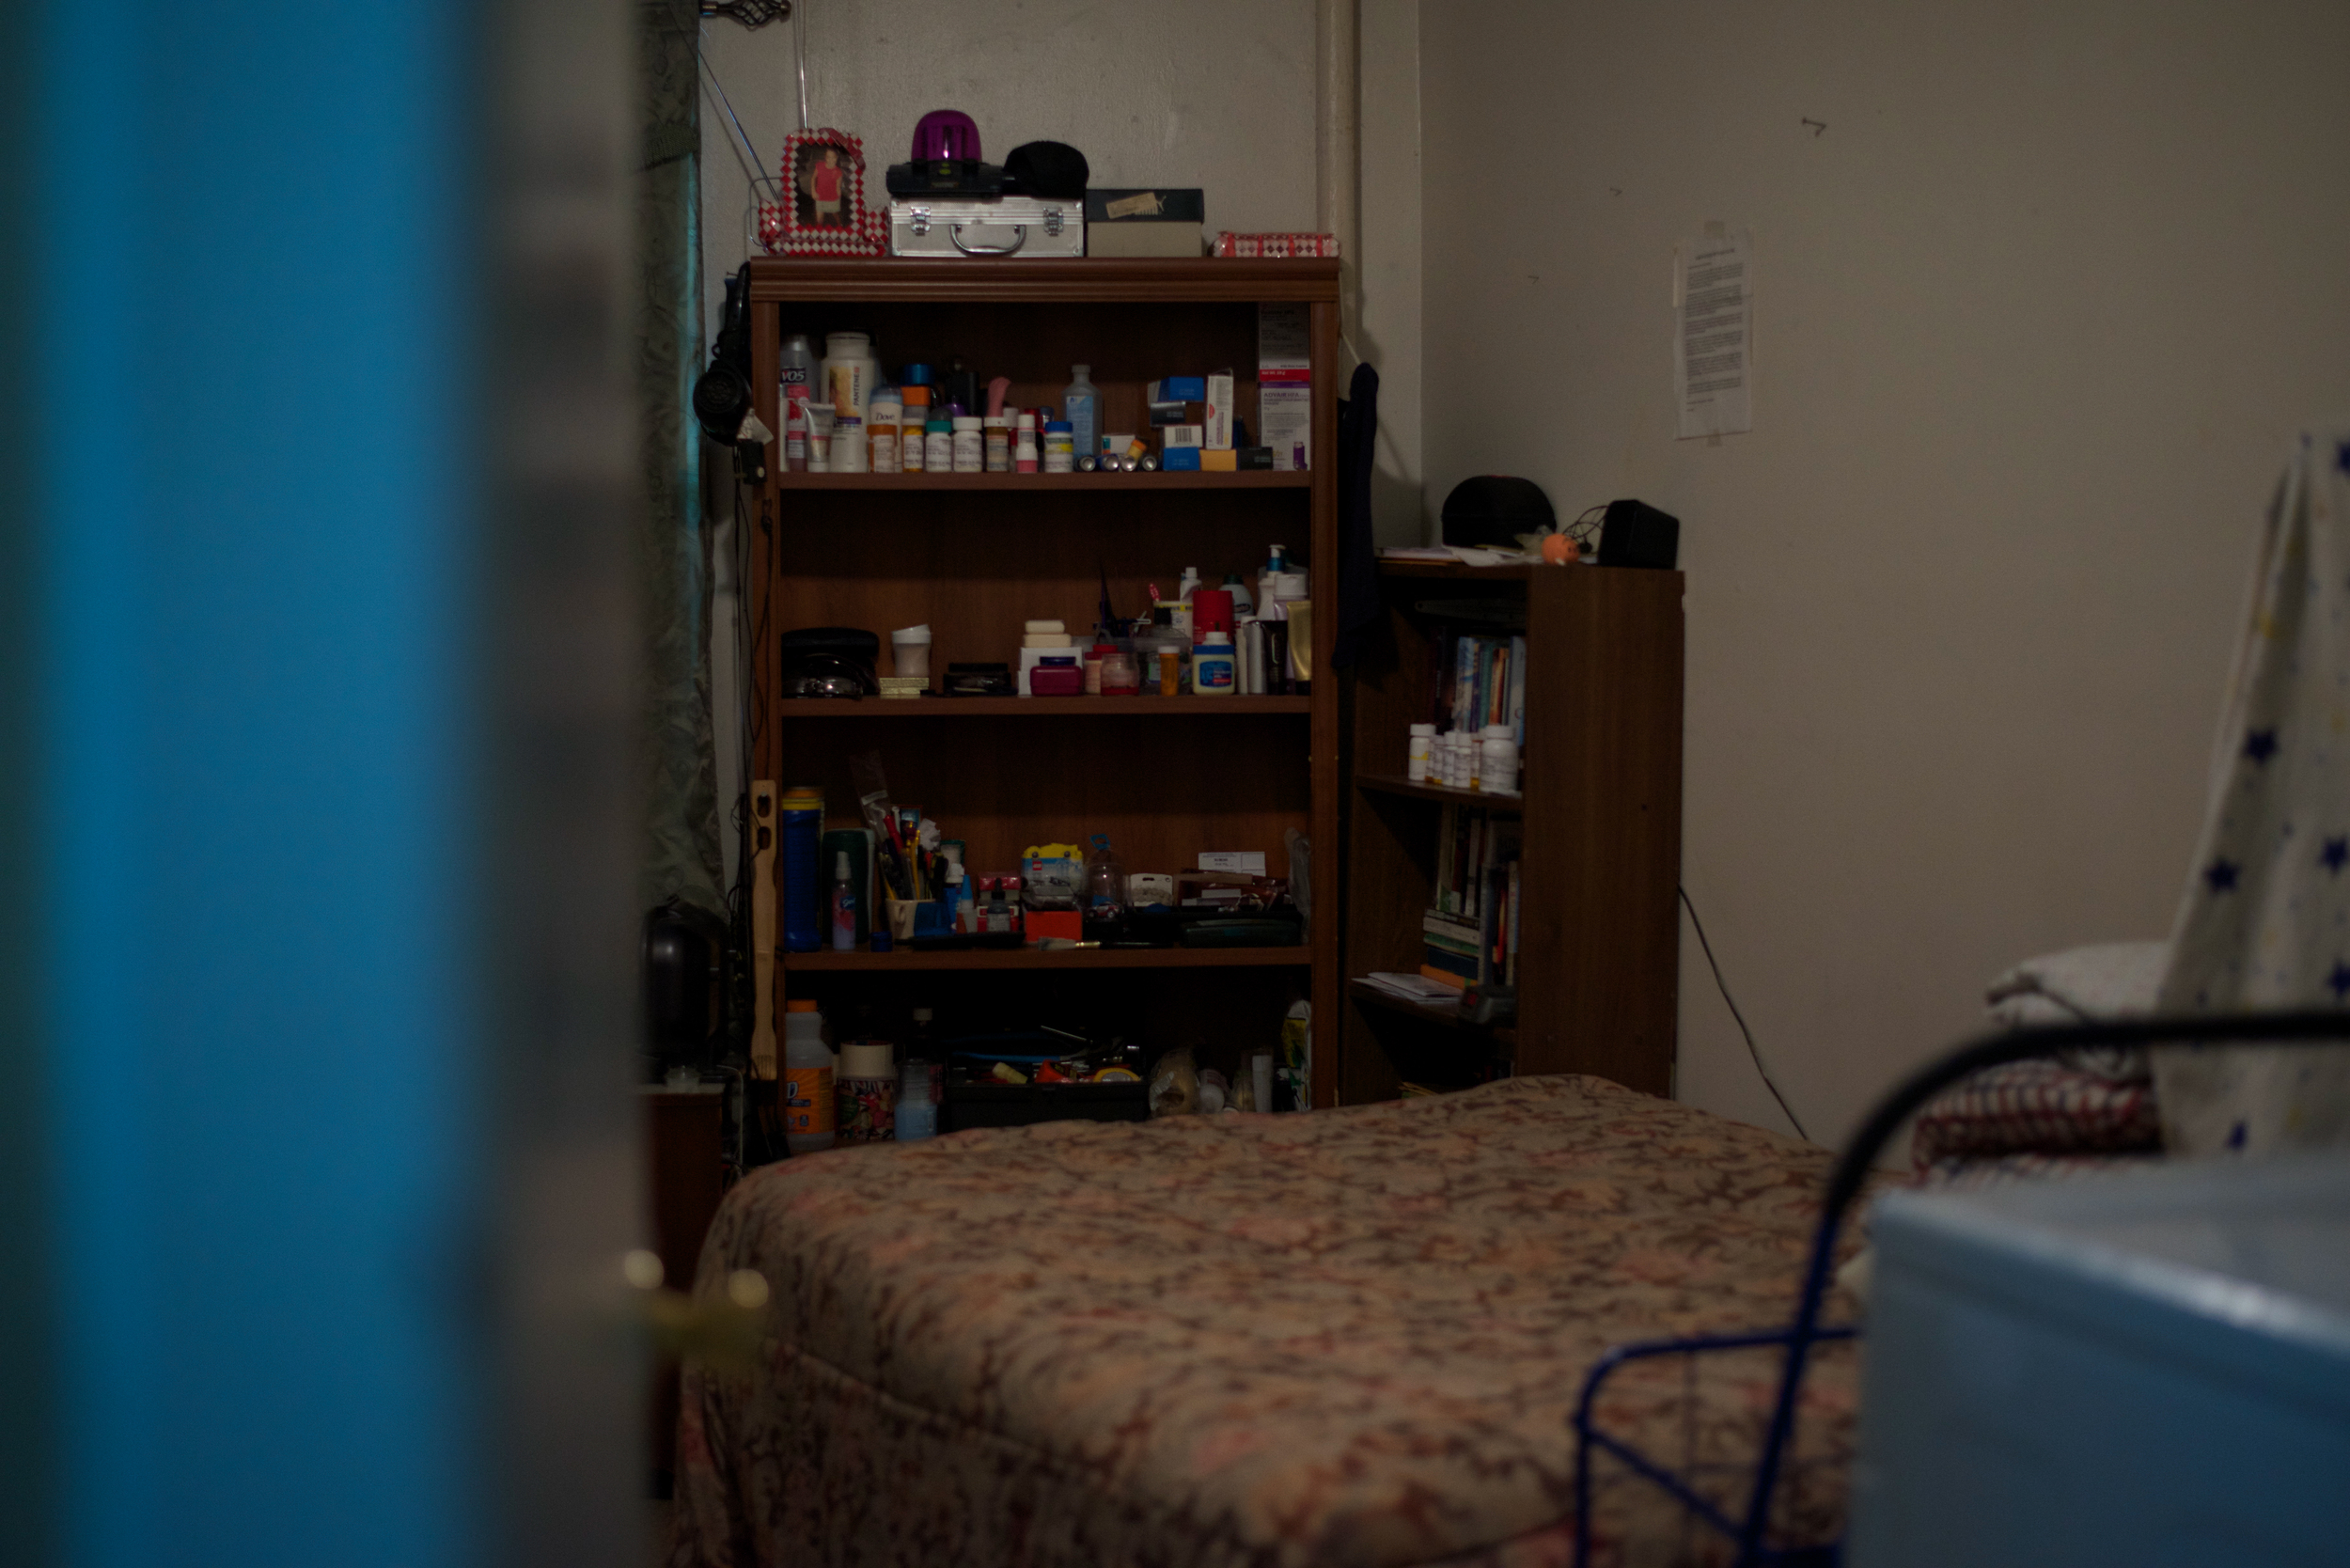 Medication, books and other personal belongings sit on bookshelves in Denis Reyes' bedroom. Reyes' brother, Wilfredo Bracero, said Reyes moved into his mother's apartment after he came out of jail.